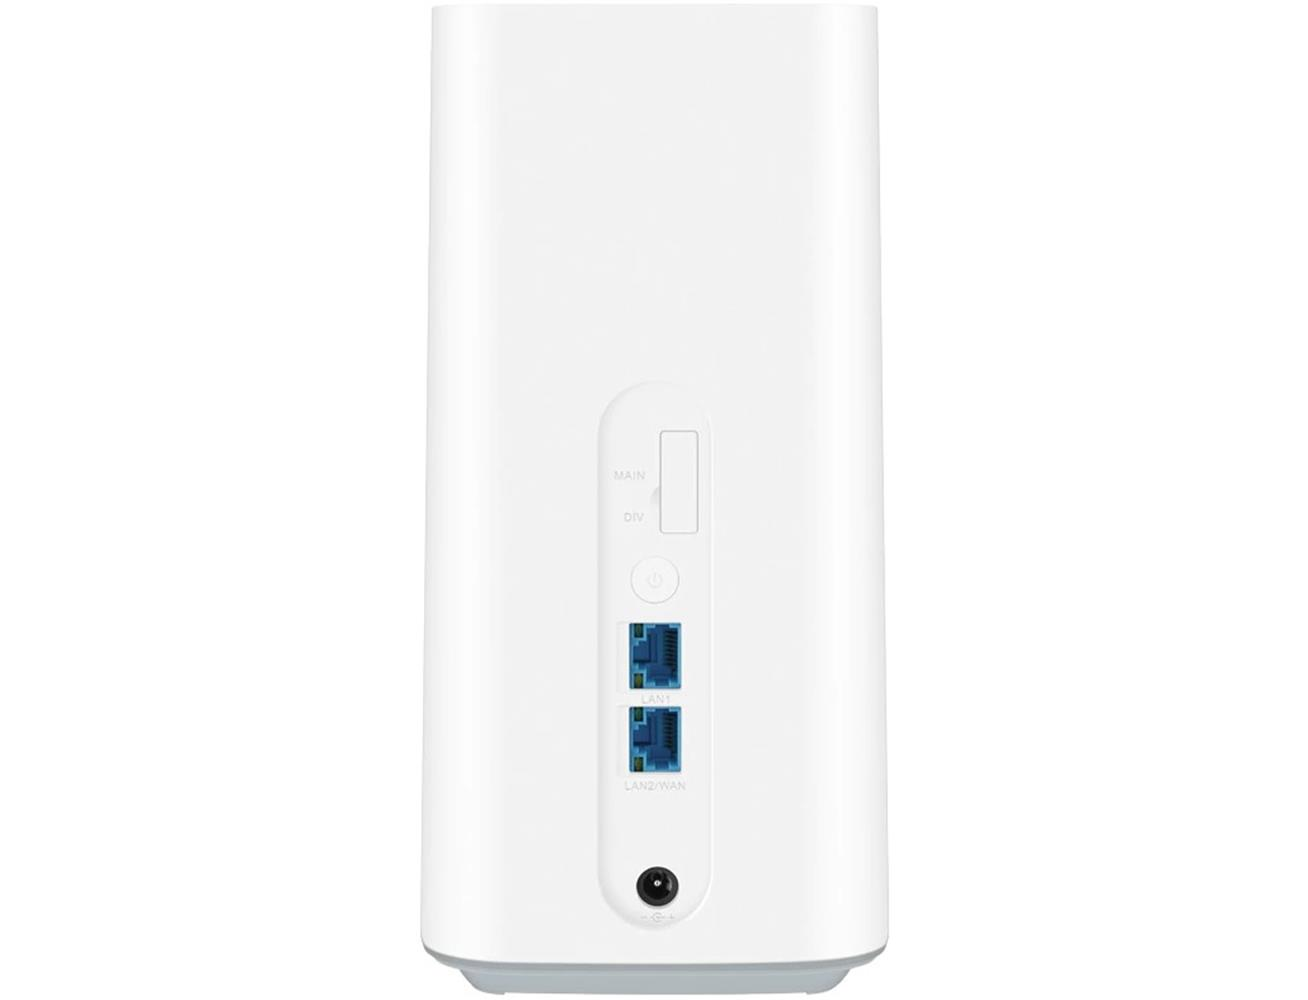 Huawei 5G CPE Pro H112-372 Wi-Fi Router - Officially